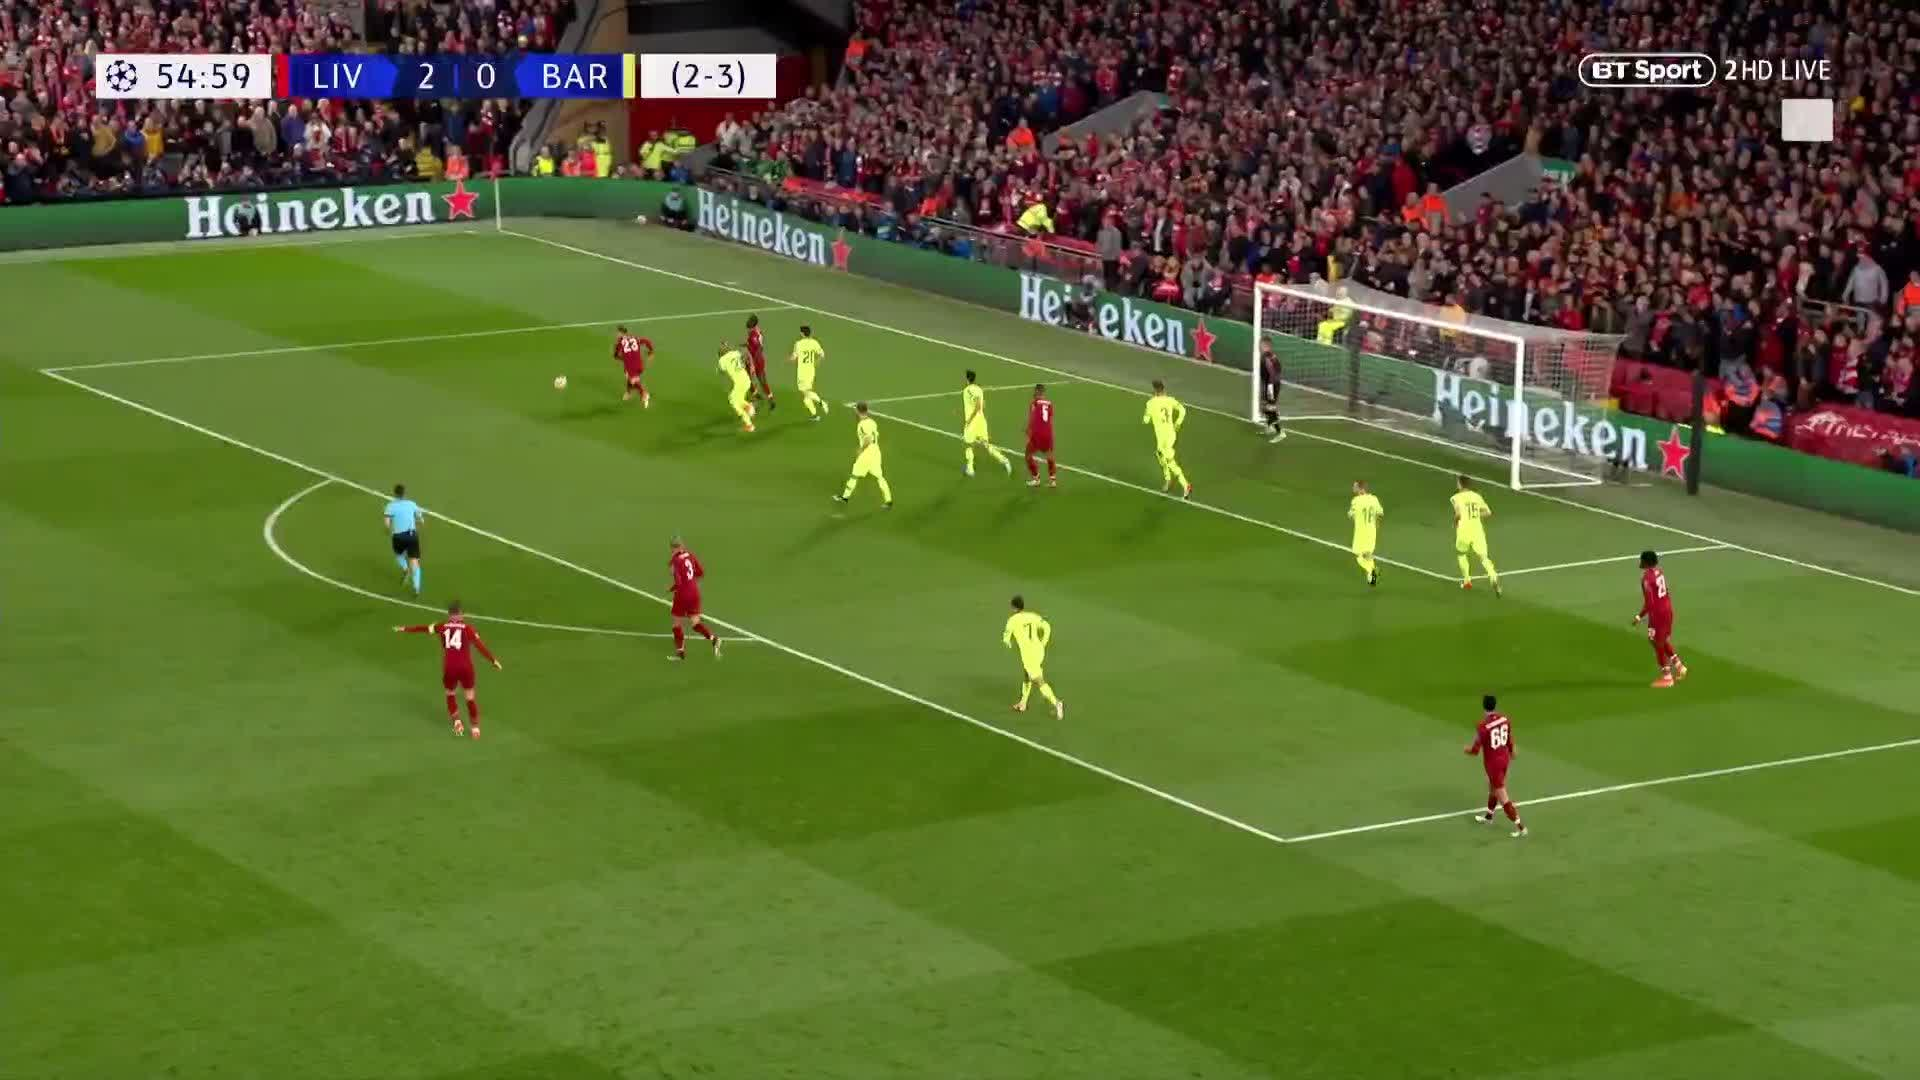 LIVERPOOL HAVE A THIRD!!!!!  Georginio Wijnaldum the Champions League hero!!!!  🔥🔥🔥 https://t.co/eLroWtnpJ6